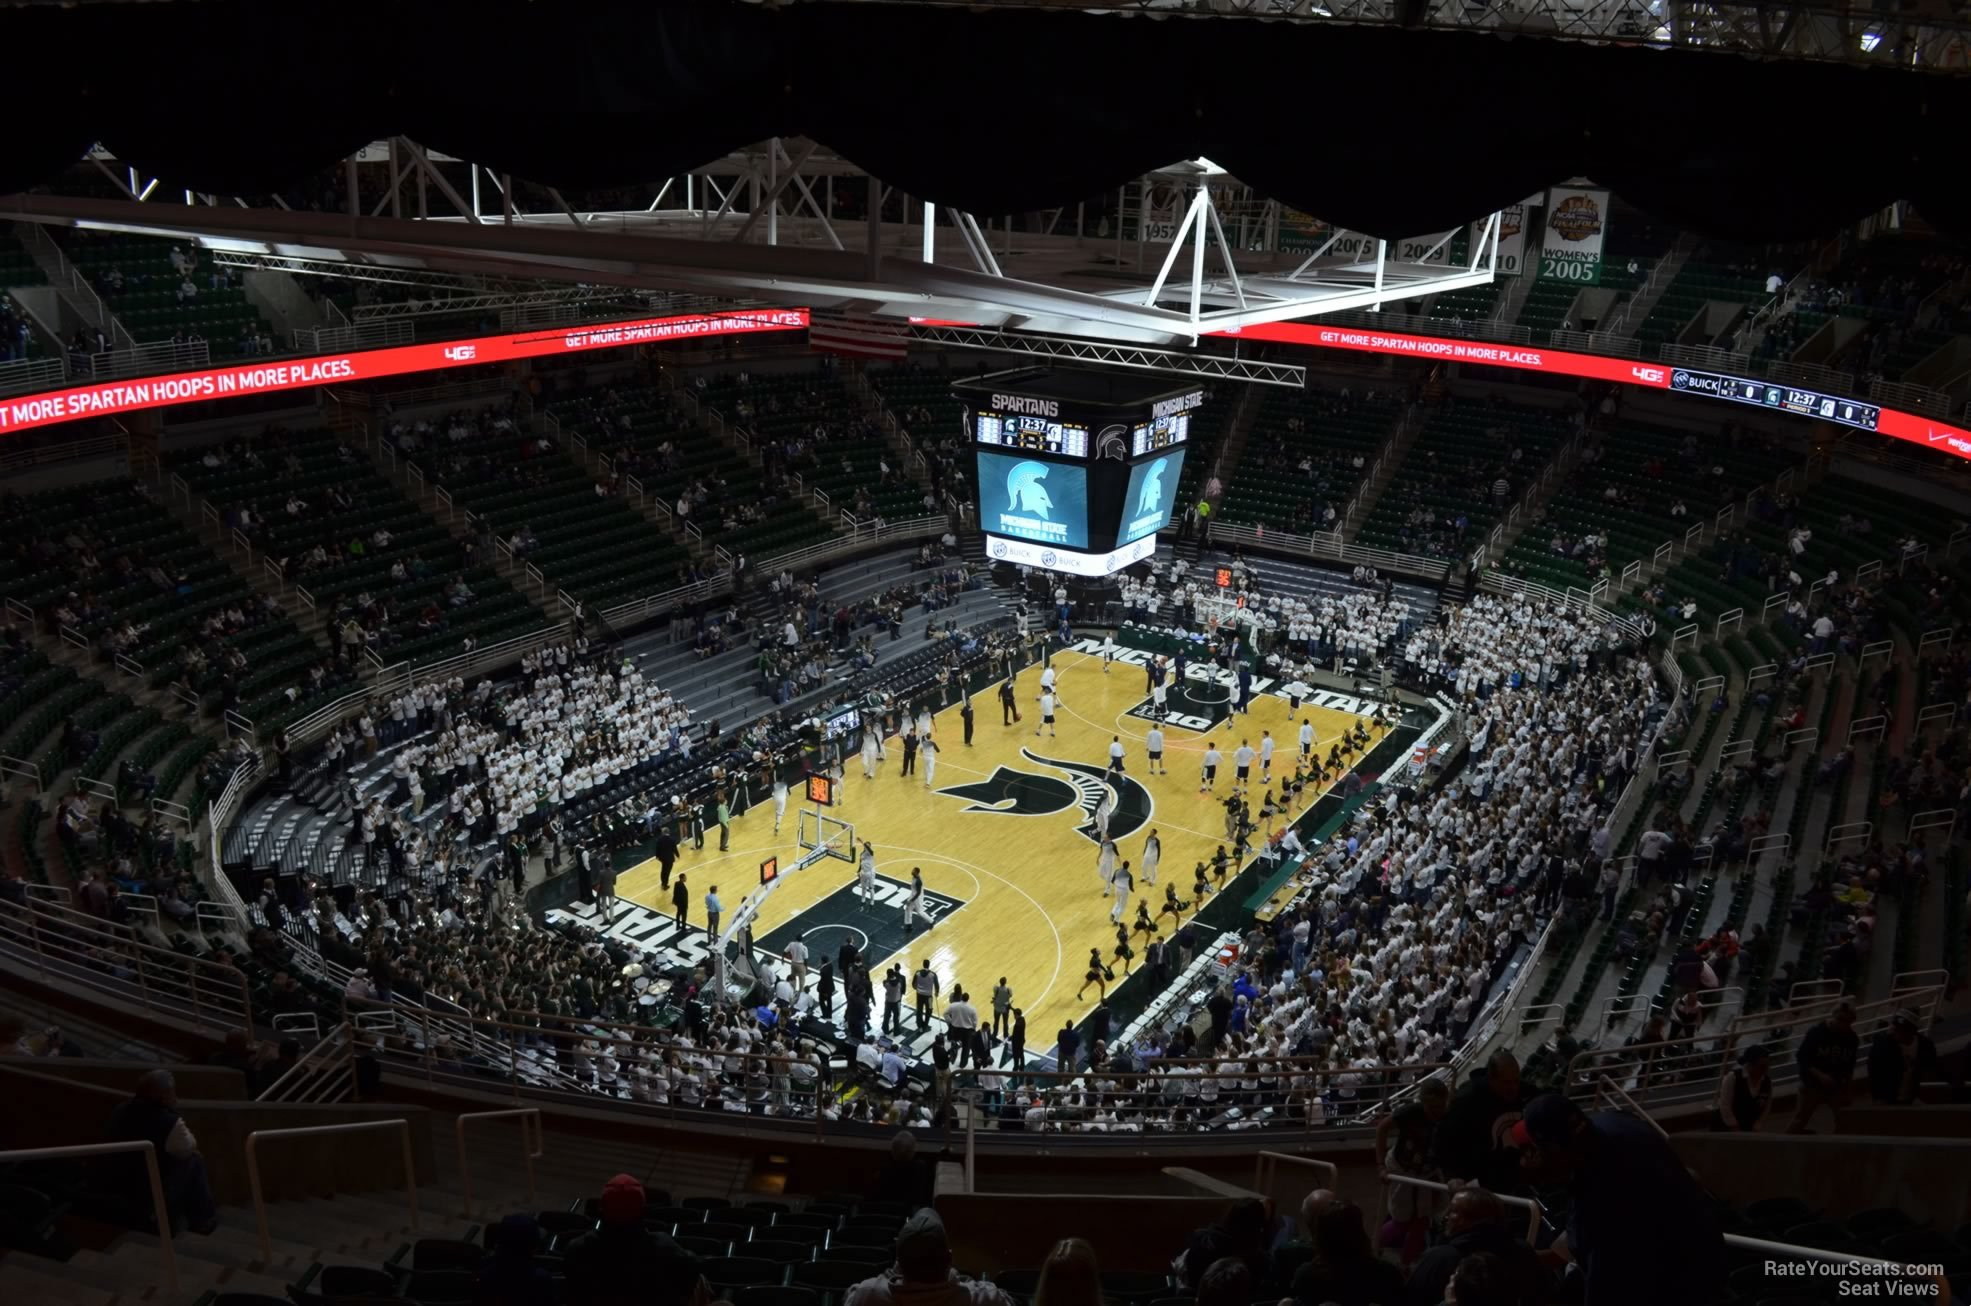 Seat View for Breslin Center Section 215, Row 15